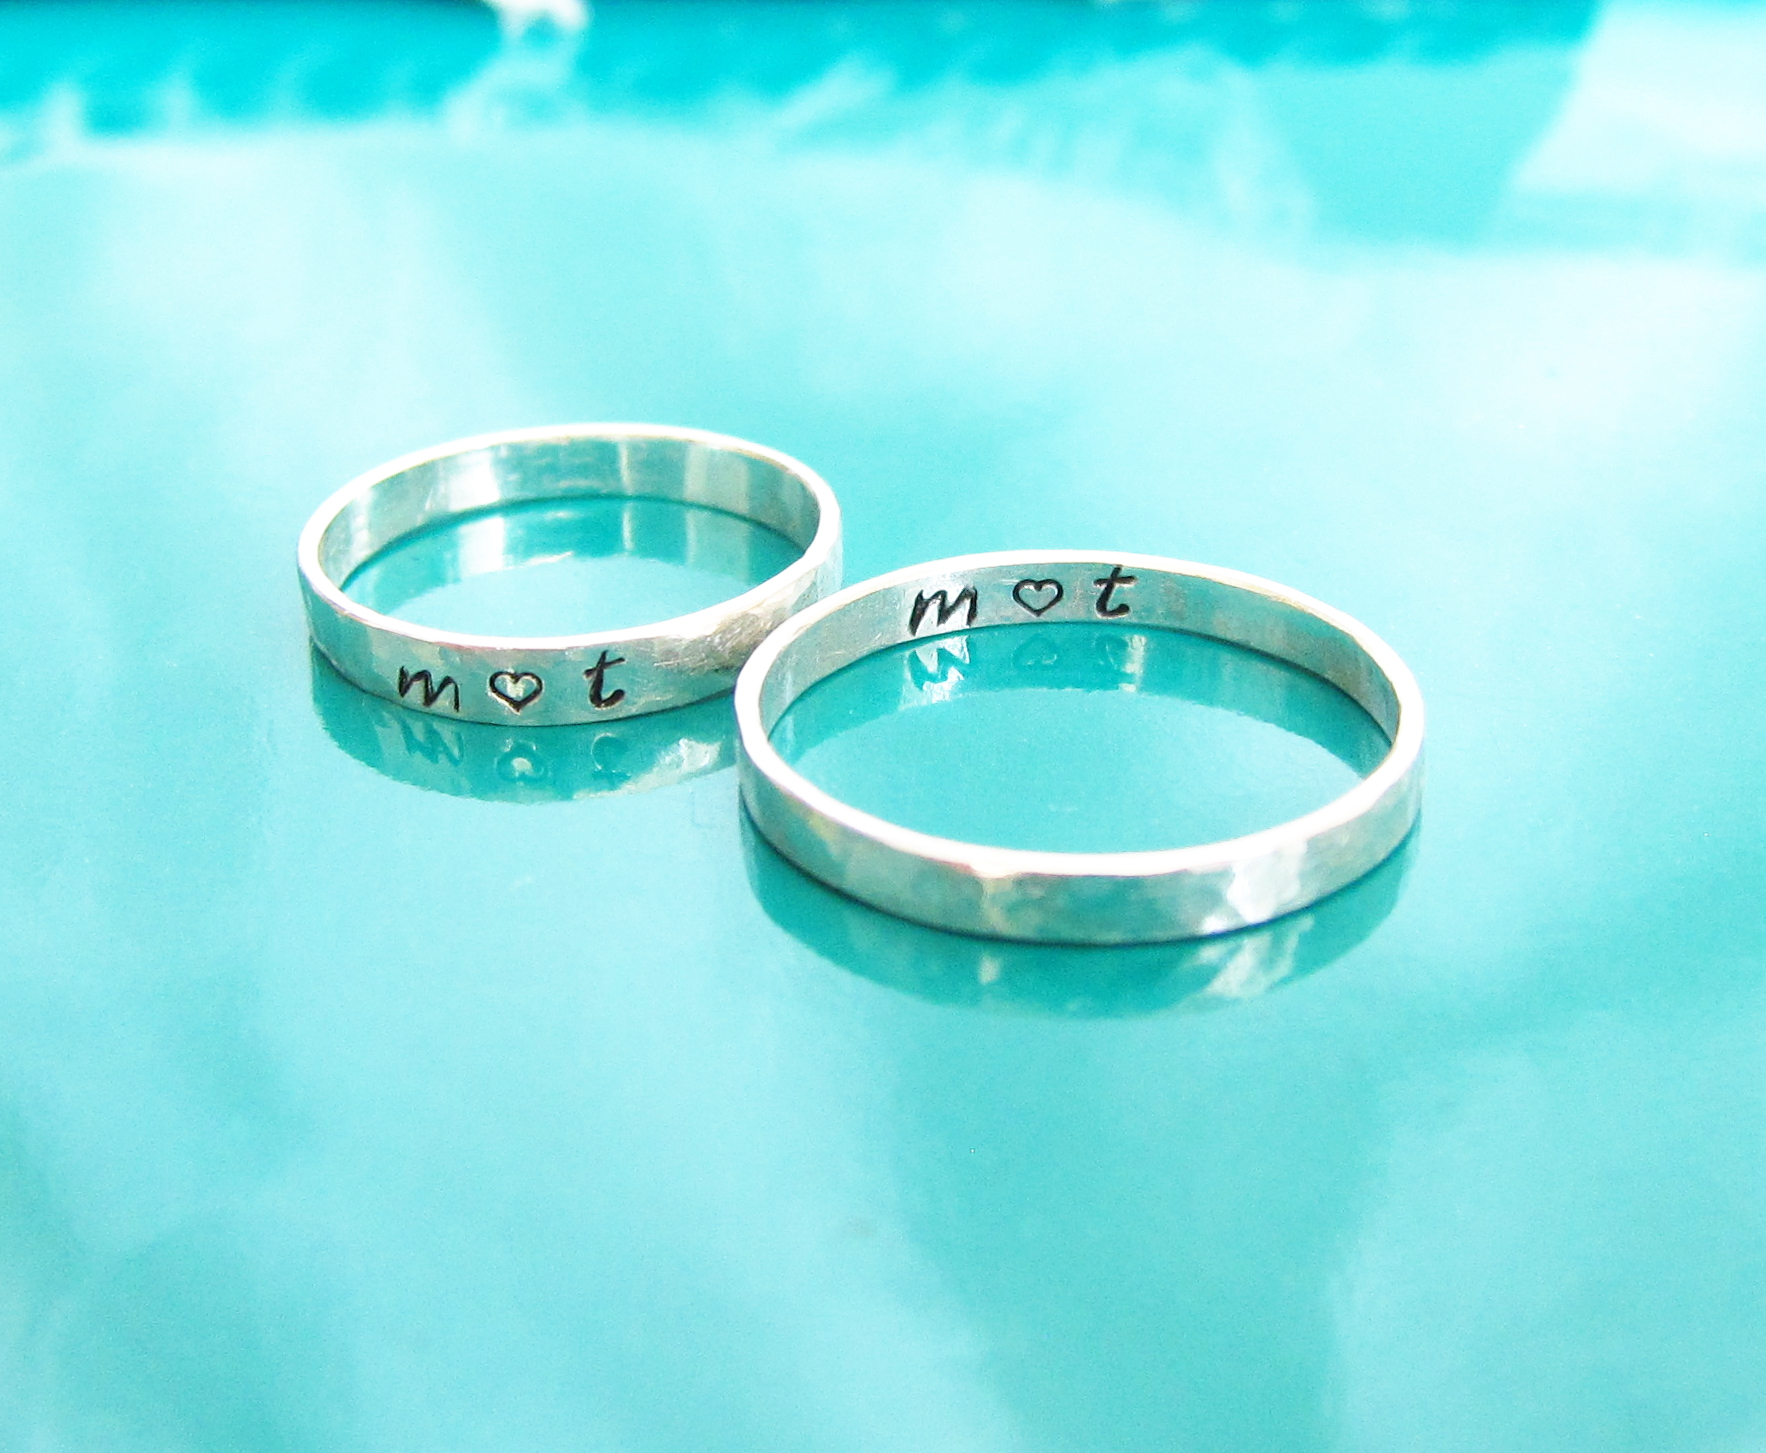 cc4c068306 3mm Sterling Silver Stamped Band Rings, Set of Silver Stamped rings ...